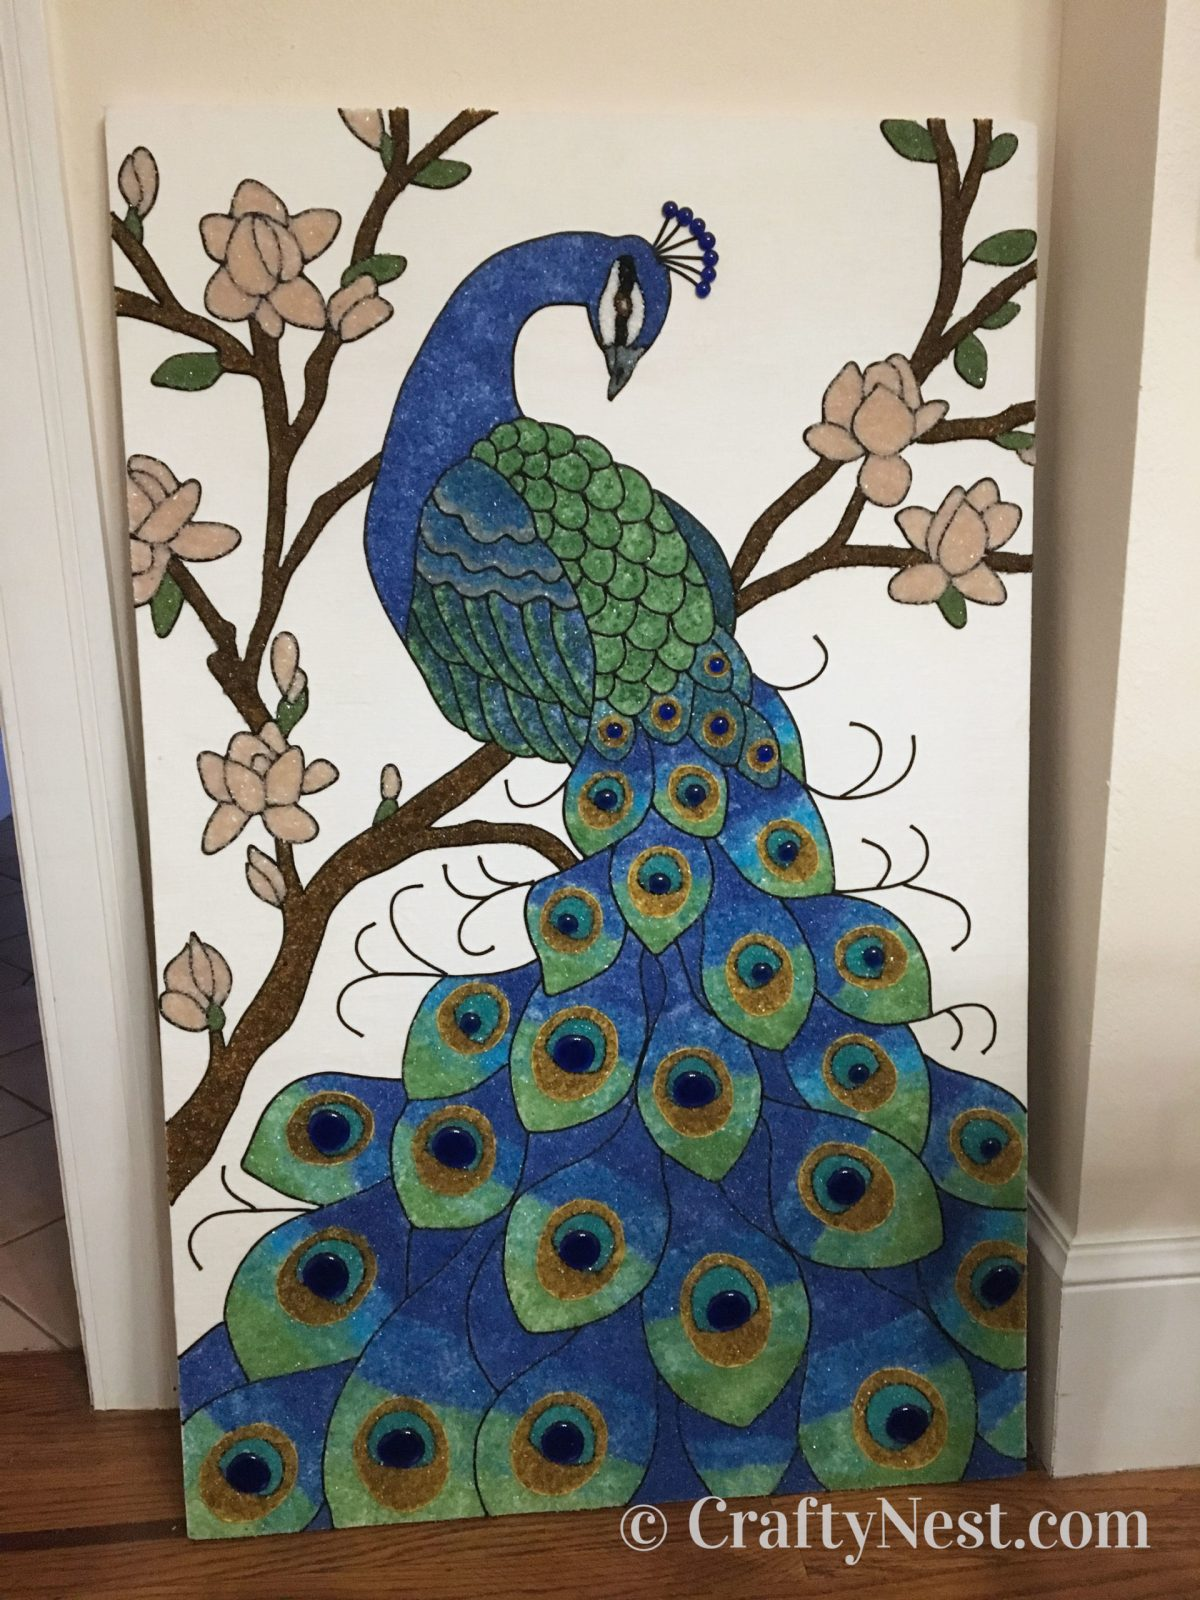 Peacock gravel art leaning against the wall, photo